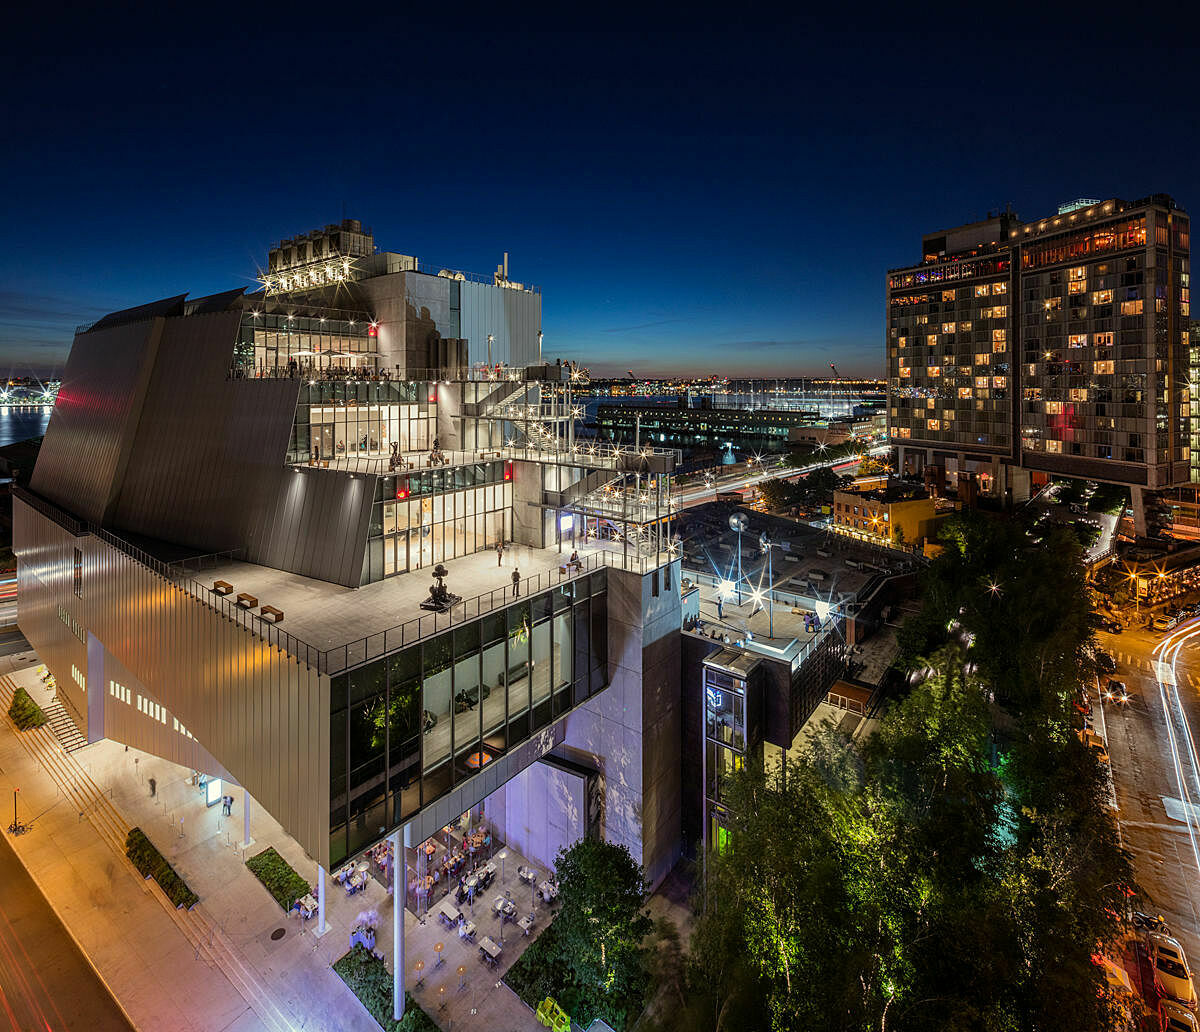 A photo of the Whitney at night.